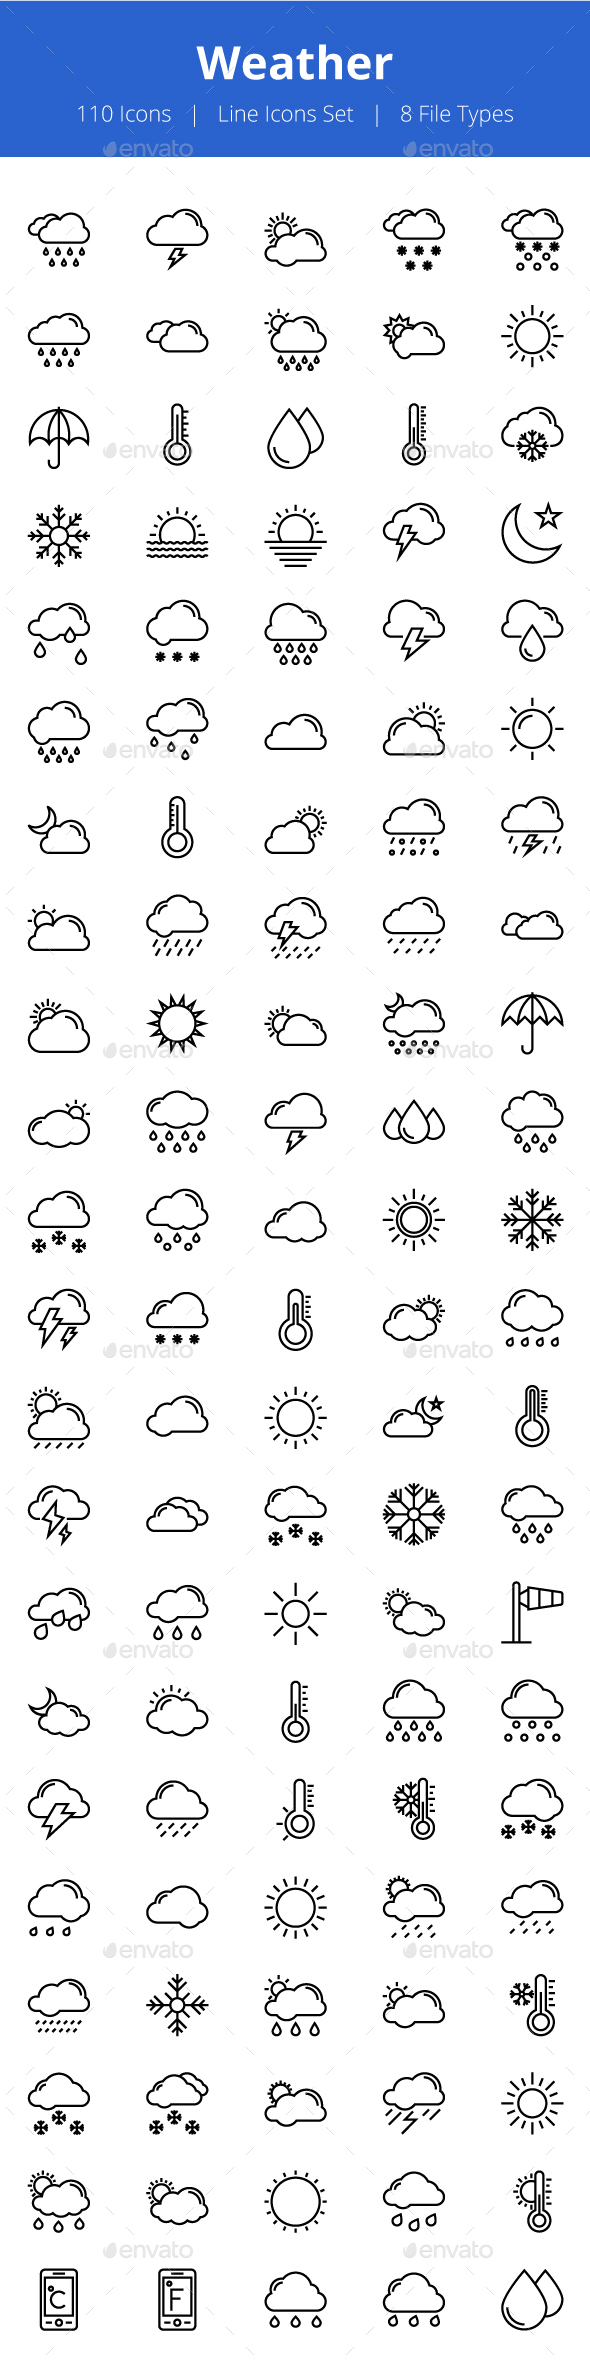 100+ Weather Line Icons - Icons